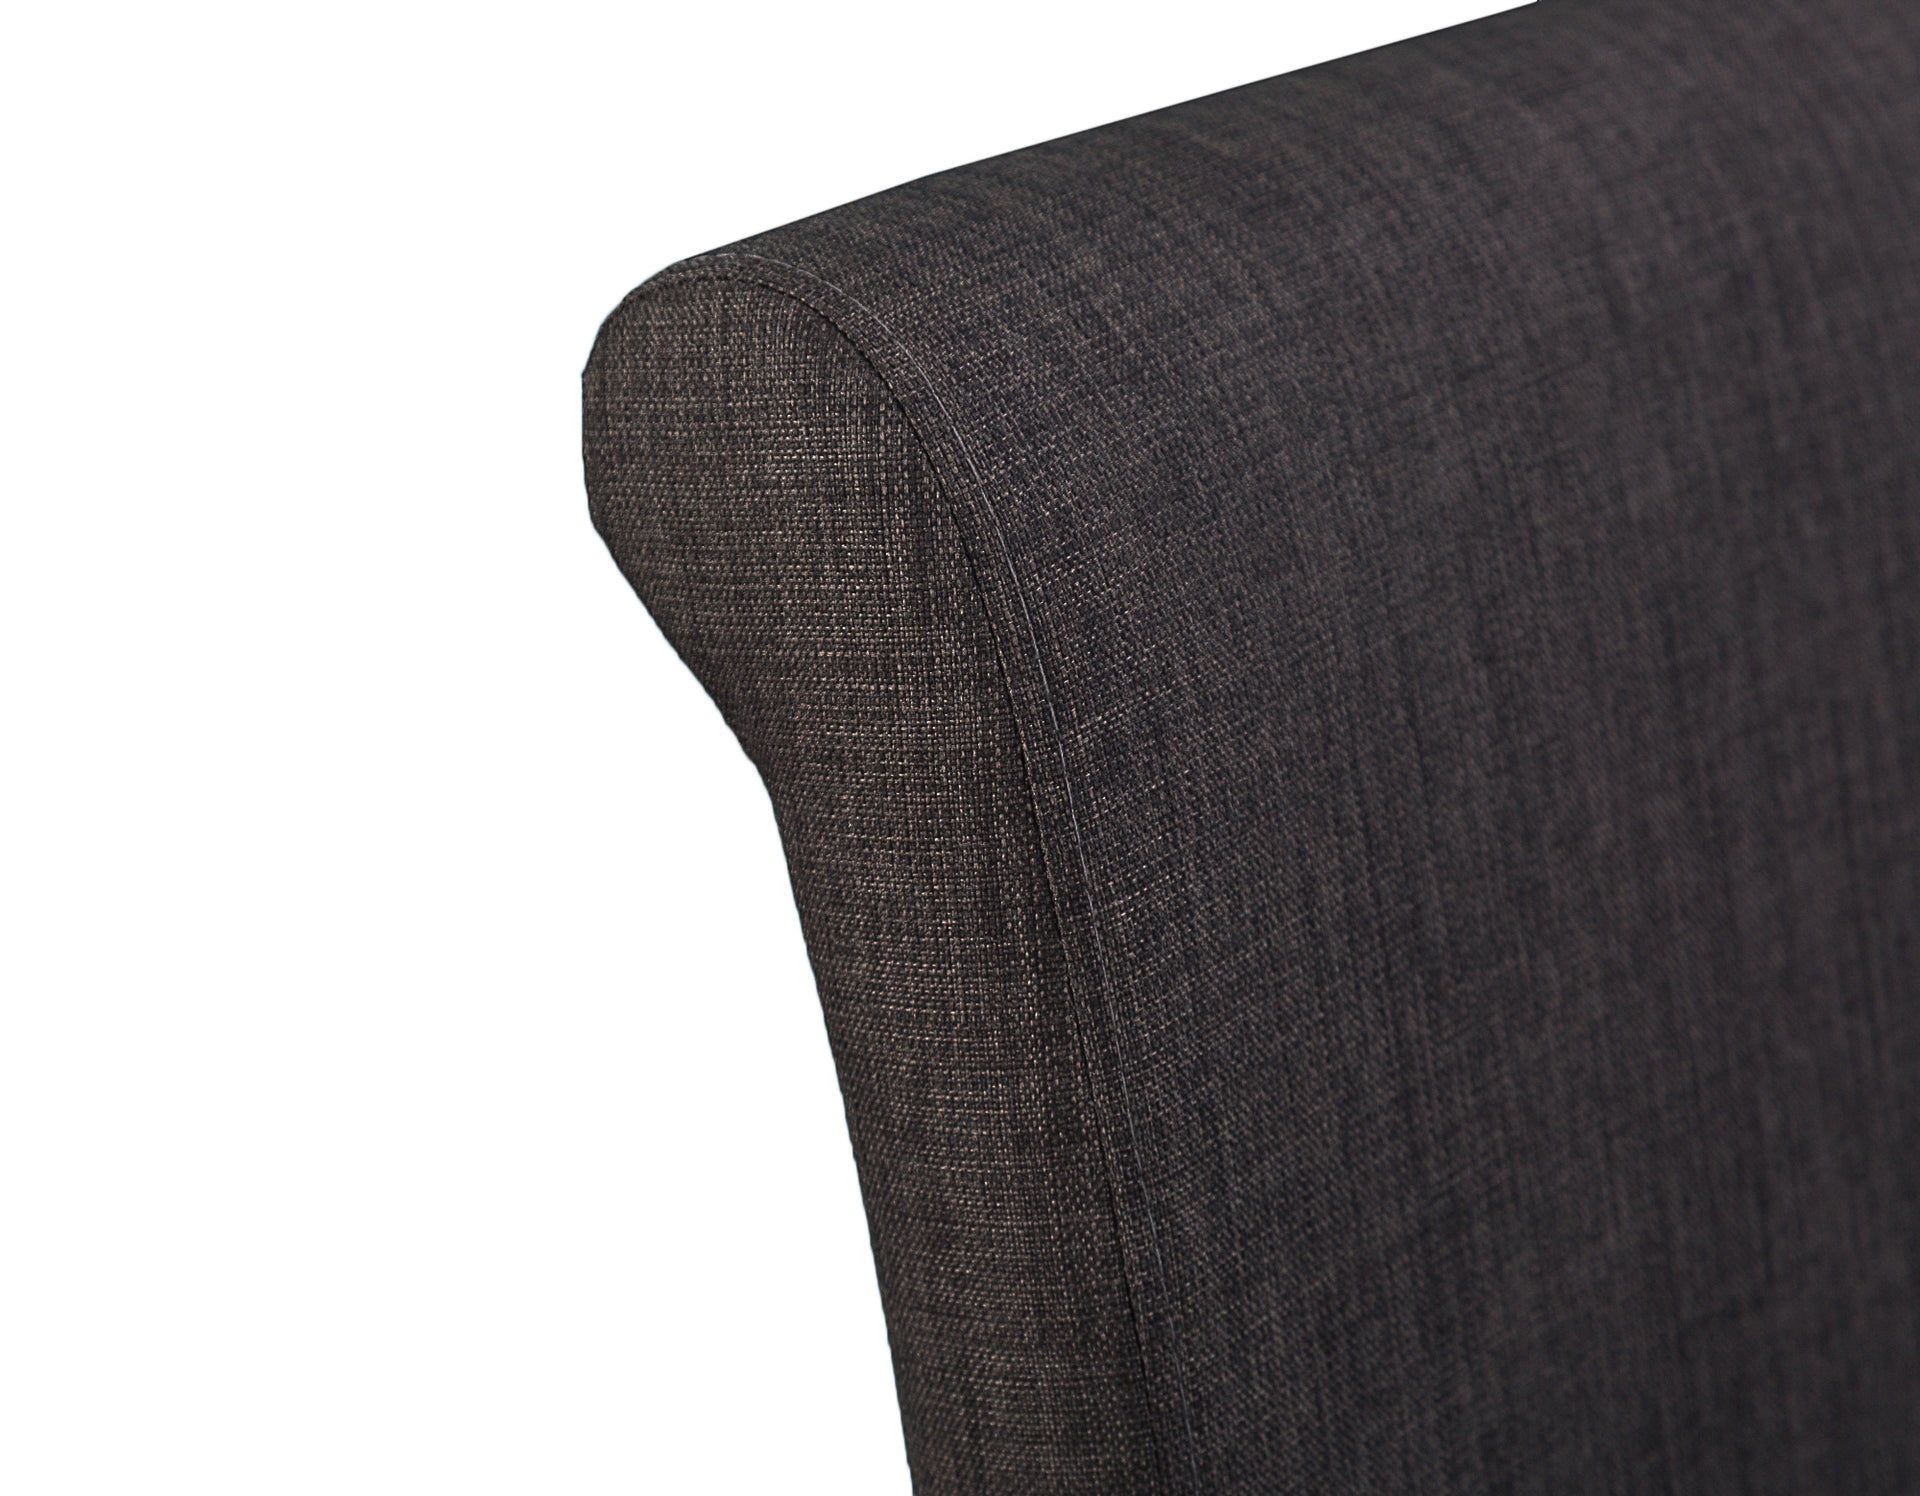 Luxury Chair Scroll Back Charcoal